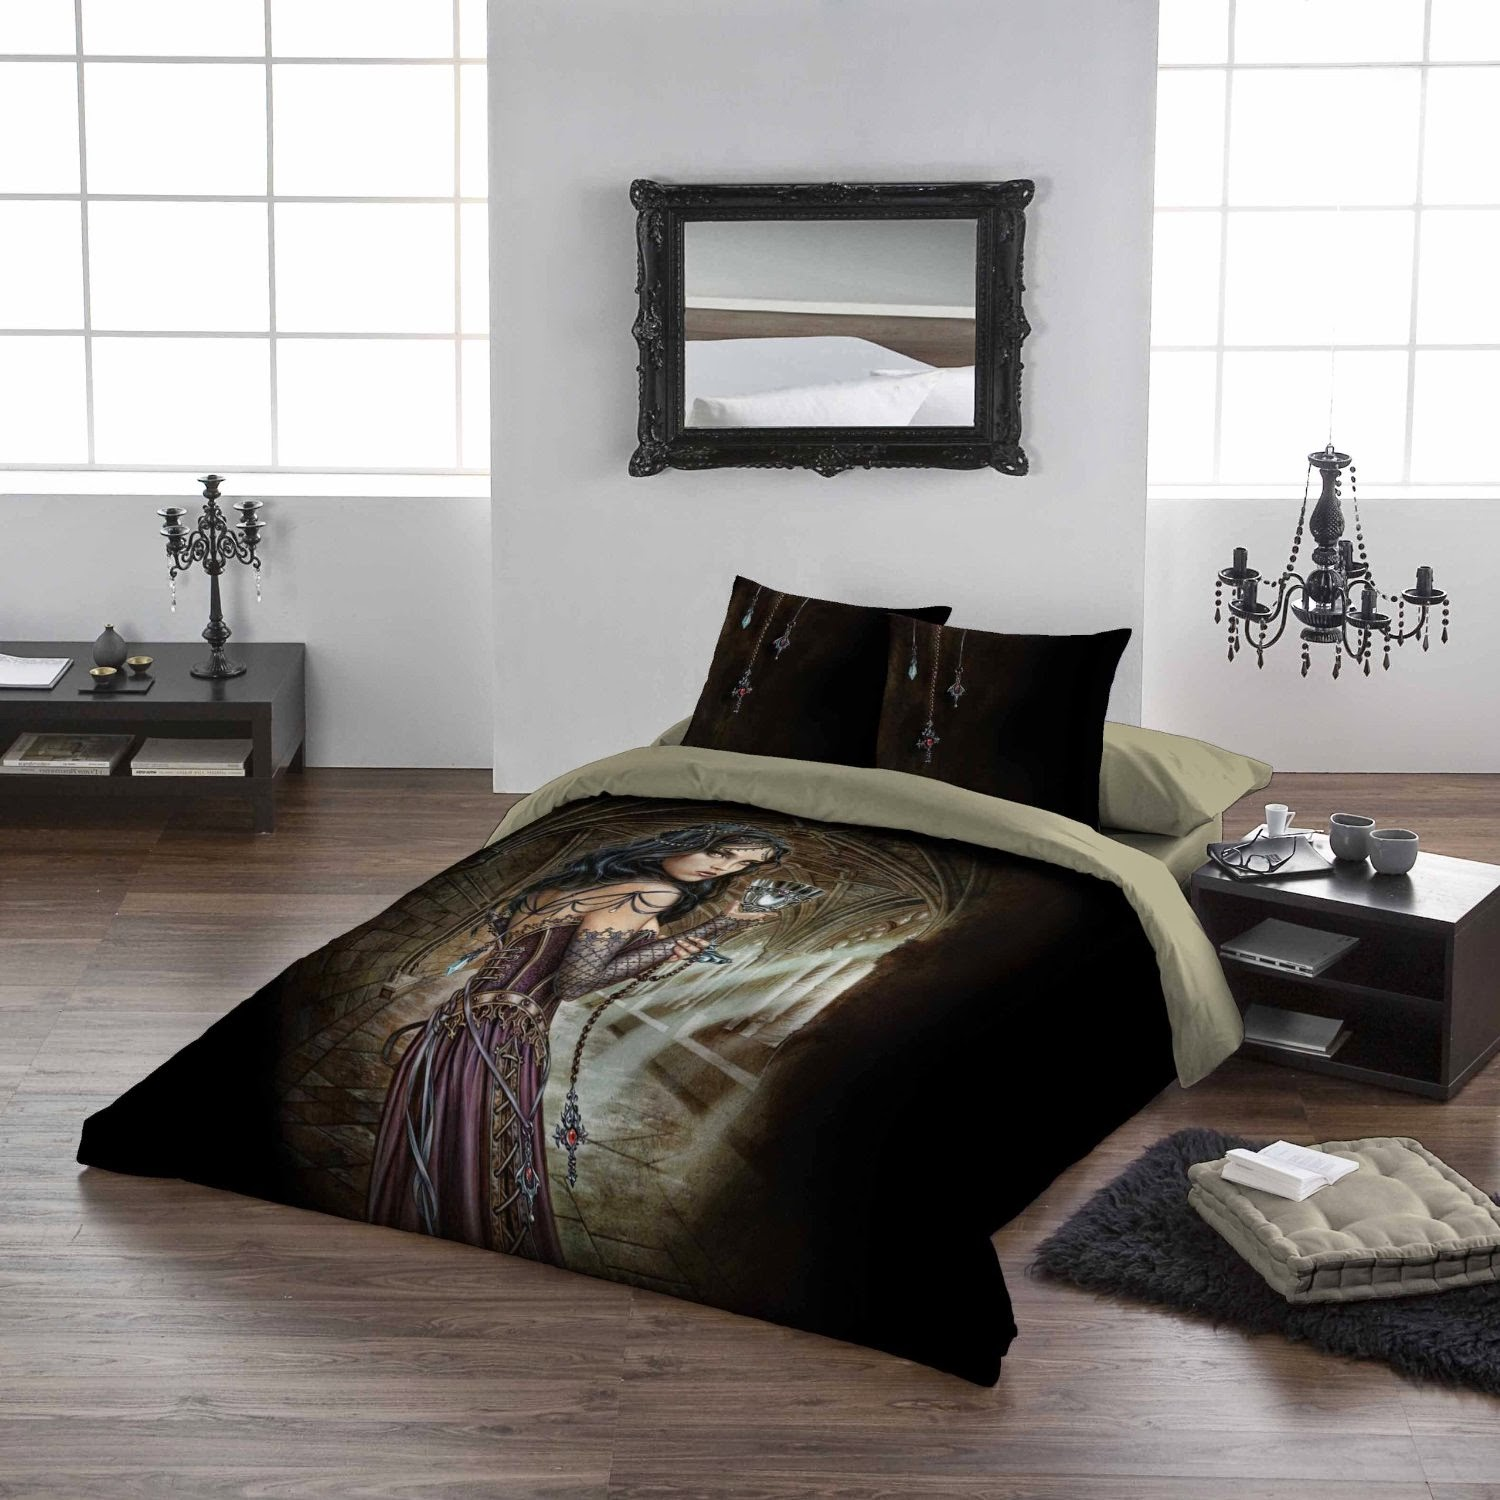 Design A Gothic Teen Bedroom Gothic Teen Bedroom : Bedroom Decor Ideas and Designs: Top Ten Gothic Bedding Sets for Girls